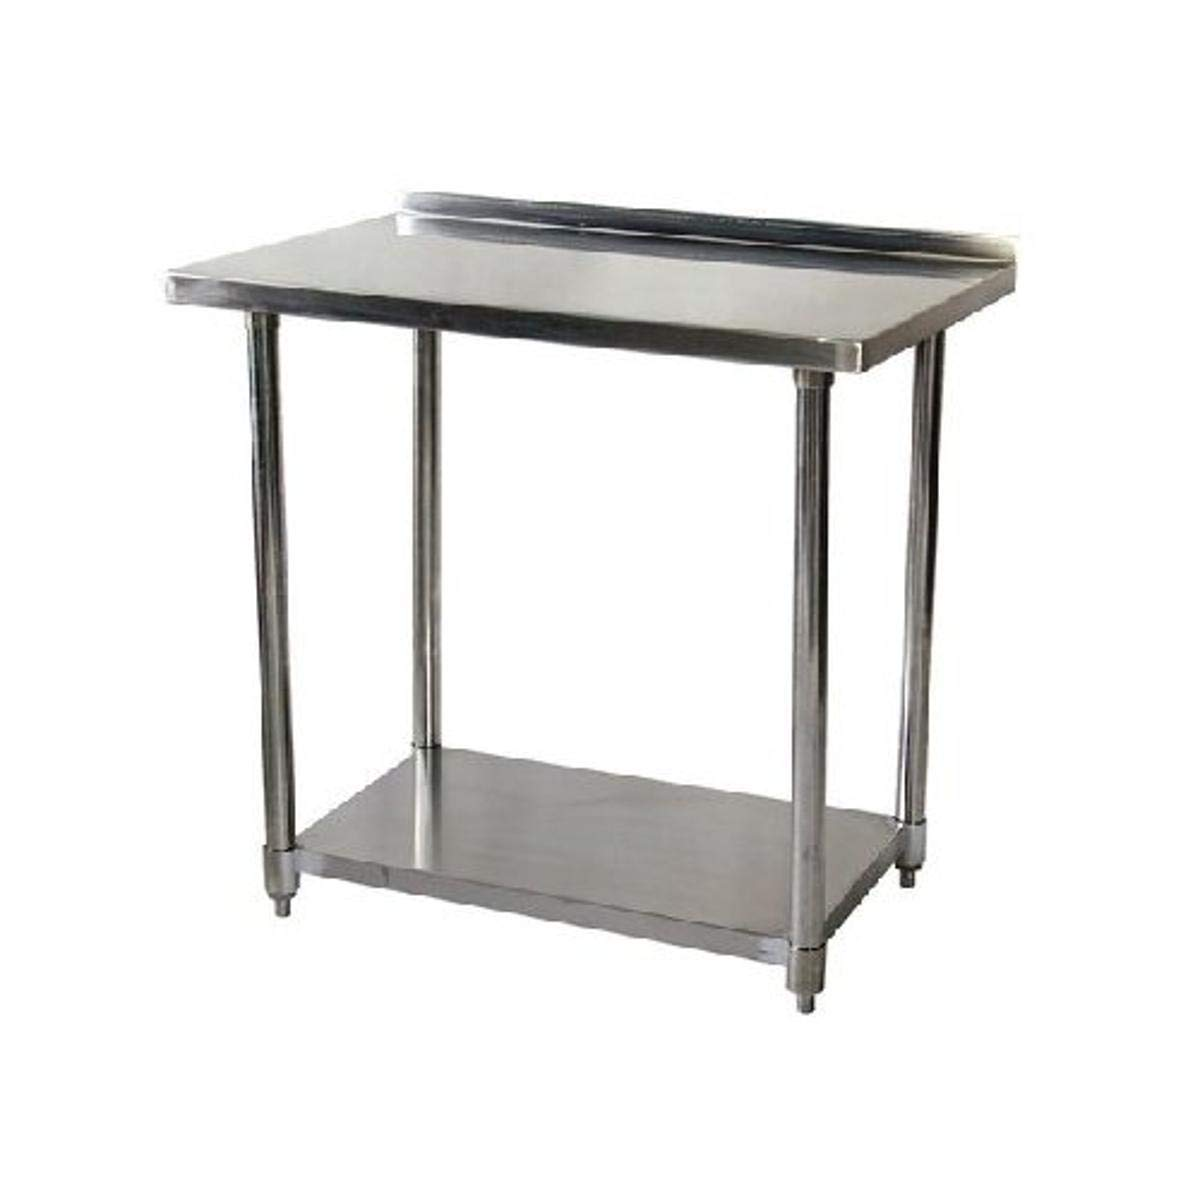 Johnson Rose 81397 Work Table Max 55% OFF with Up Steel Stainless 304 Turn Bombing new work